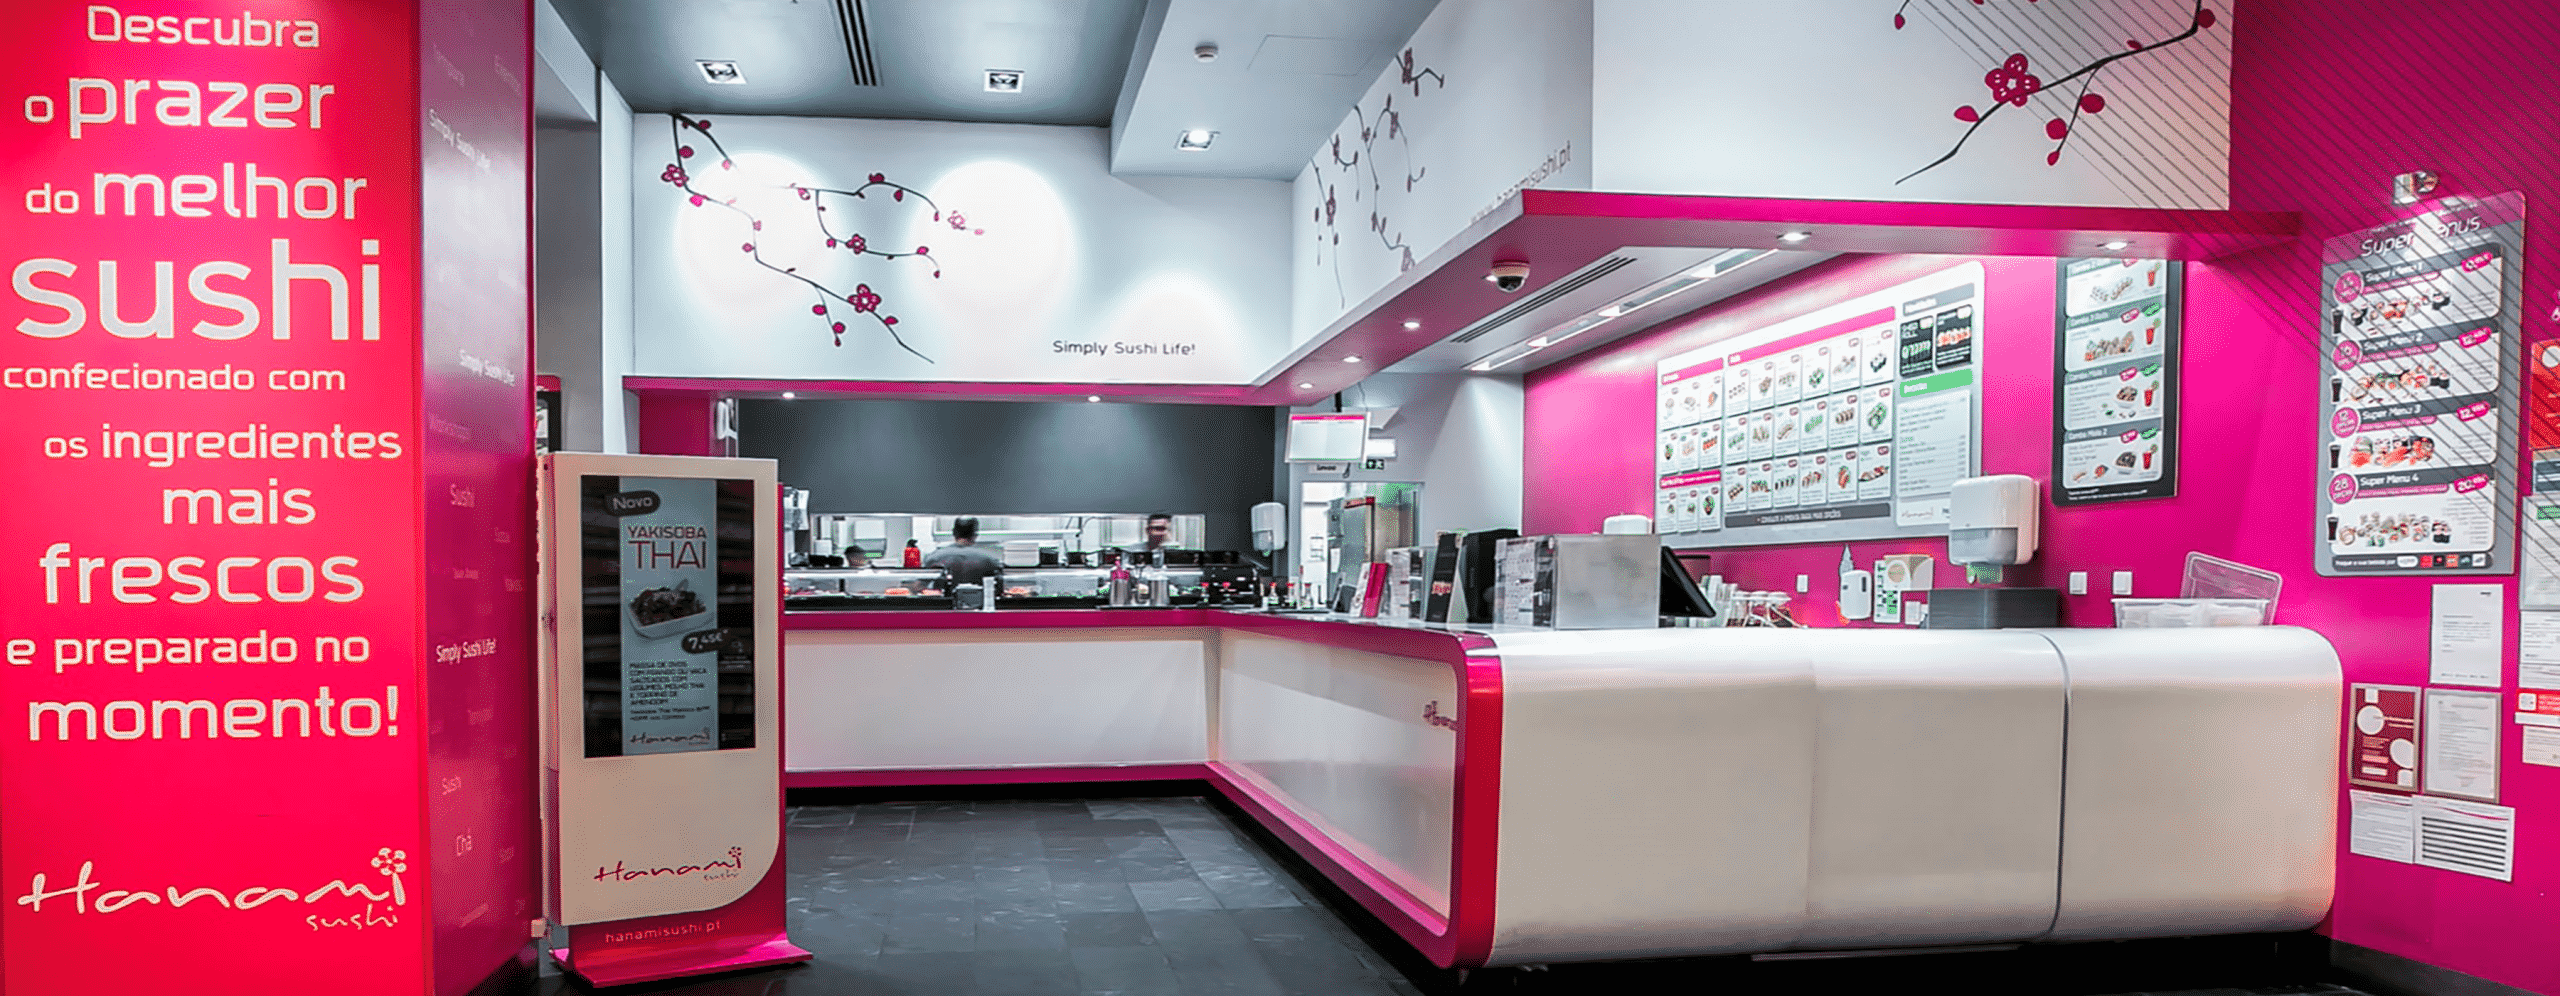 Hanami Sushi will improve service delivery to your customers